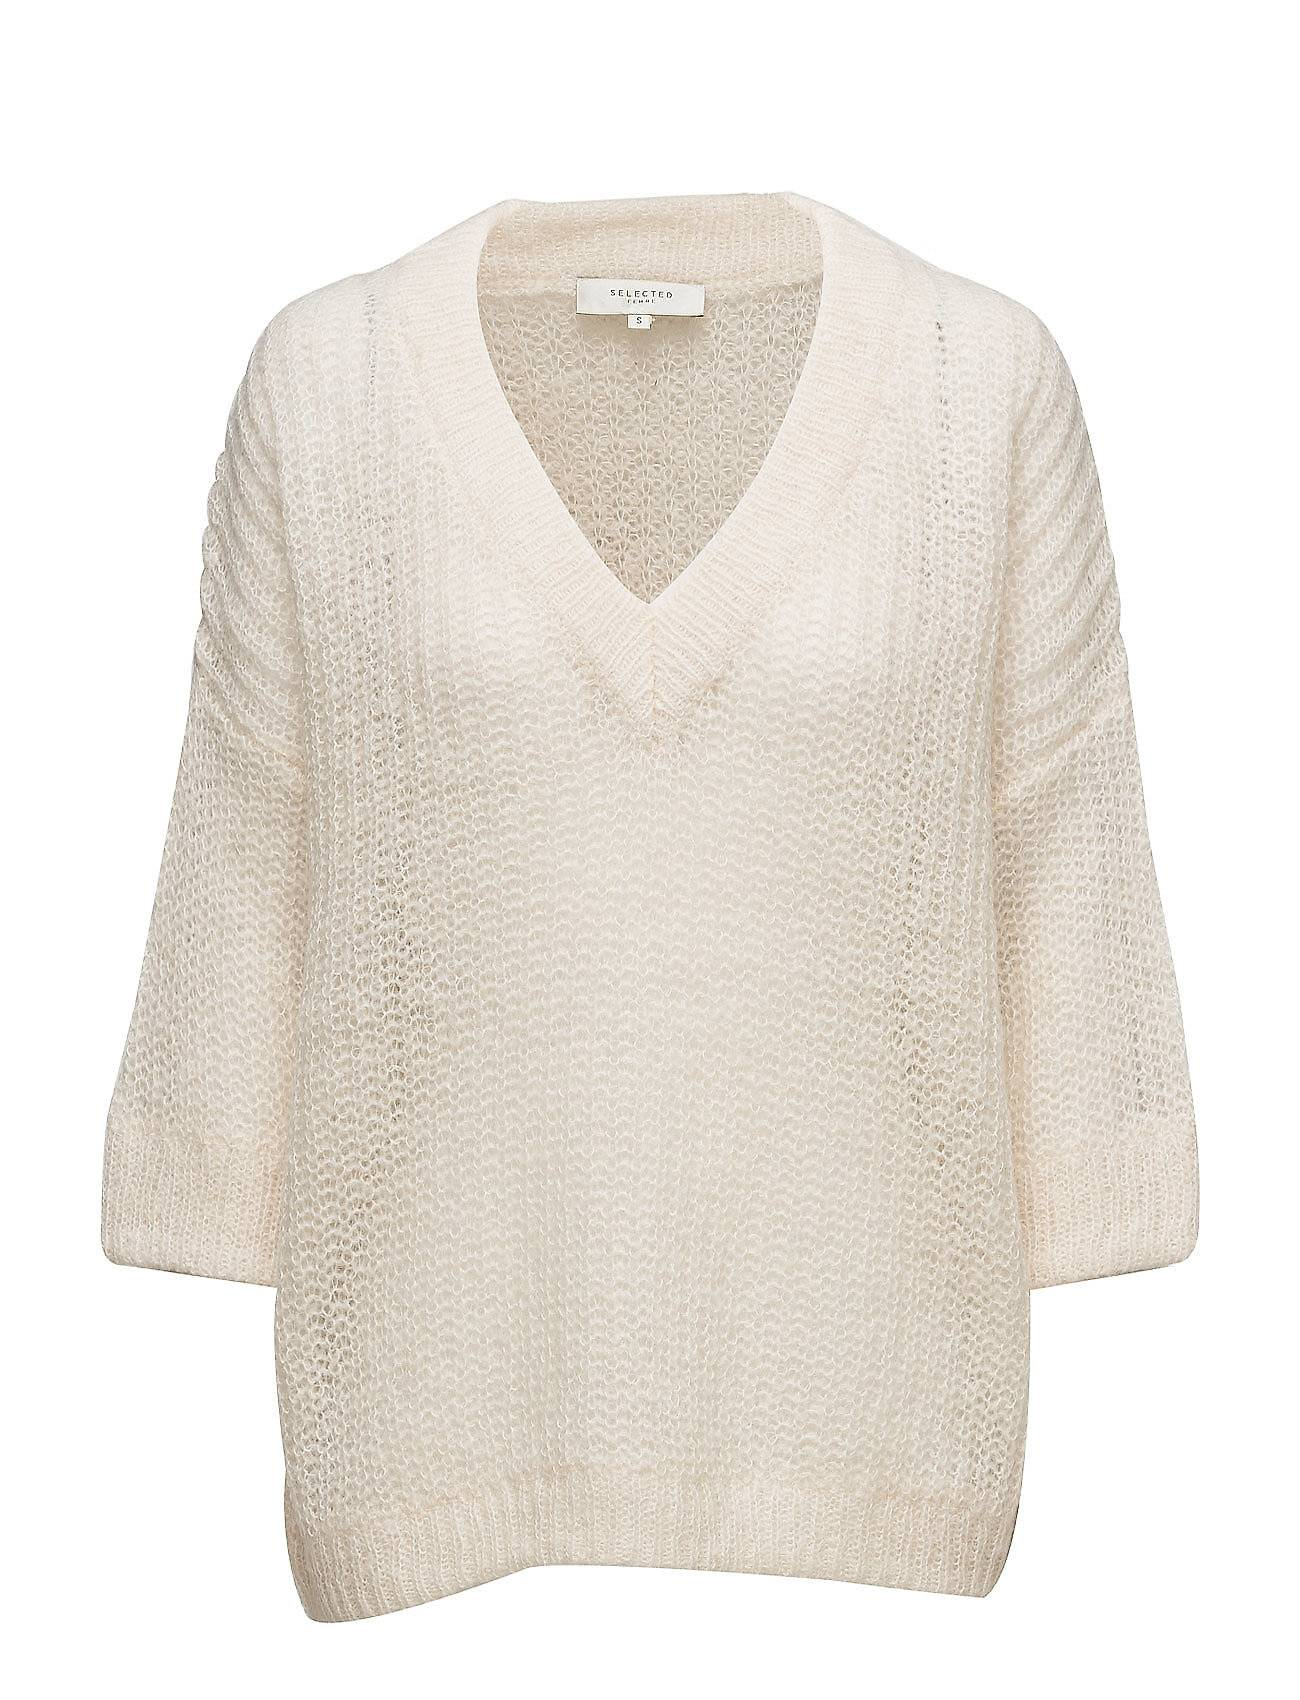 Selected Femme Sfjina 3/4 Knit V-Neck